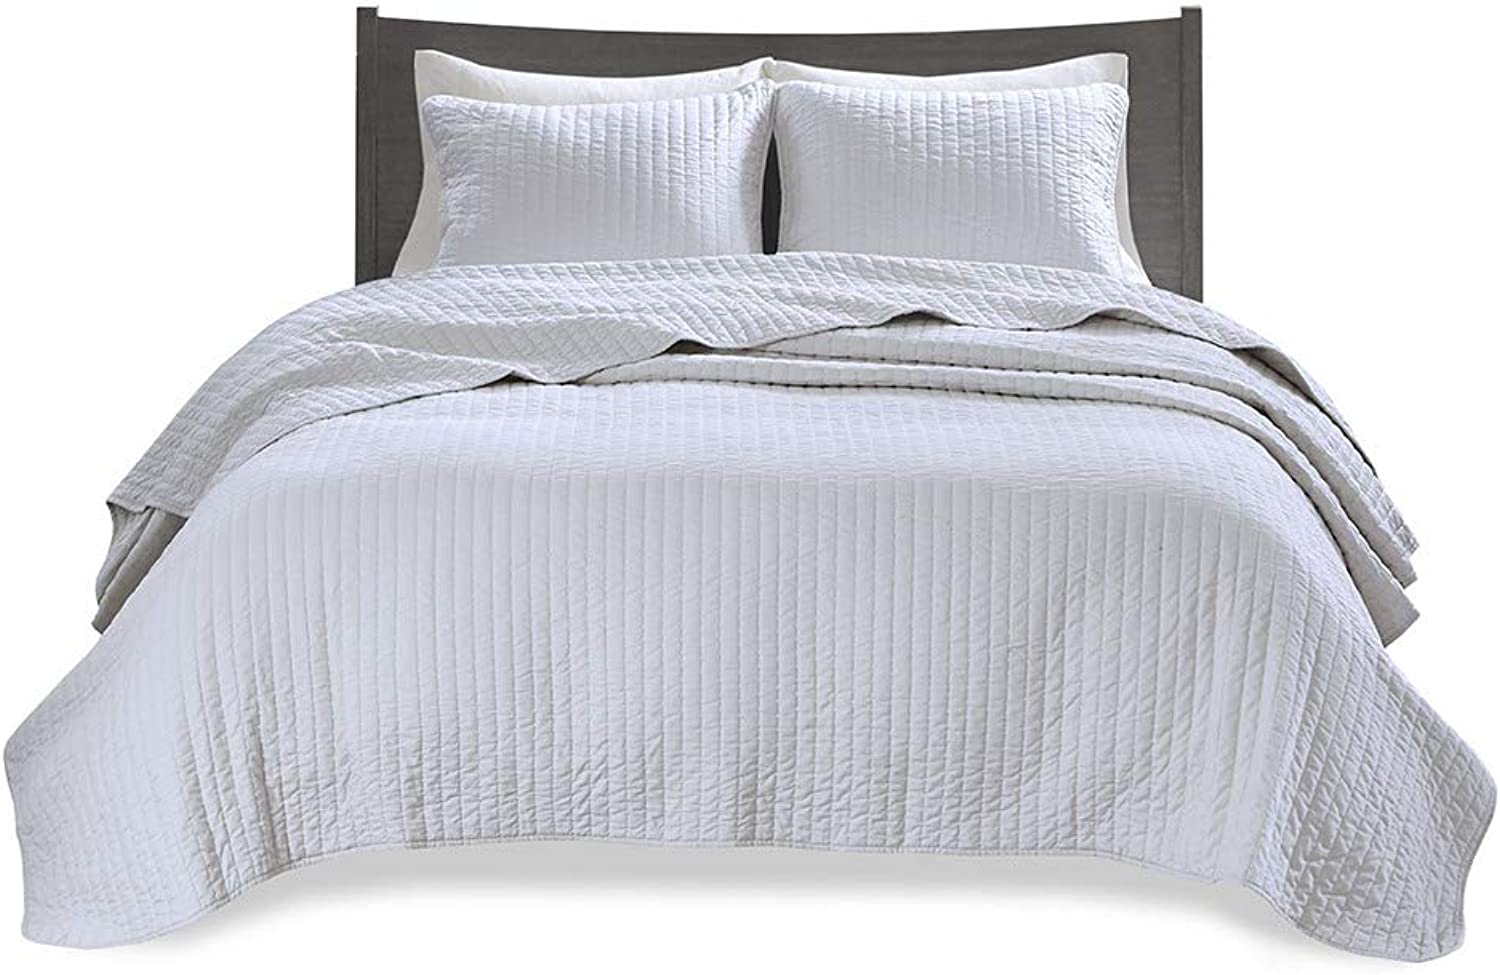 Madison Park Keaton Full Queen Size Set-White, 3 Piece Ultra Soft Microfiber Bed Quilted Coverlet